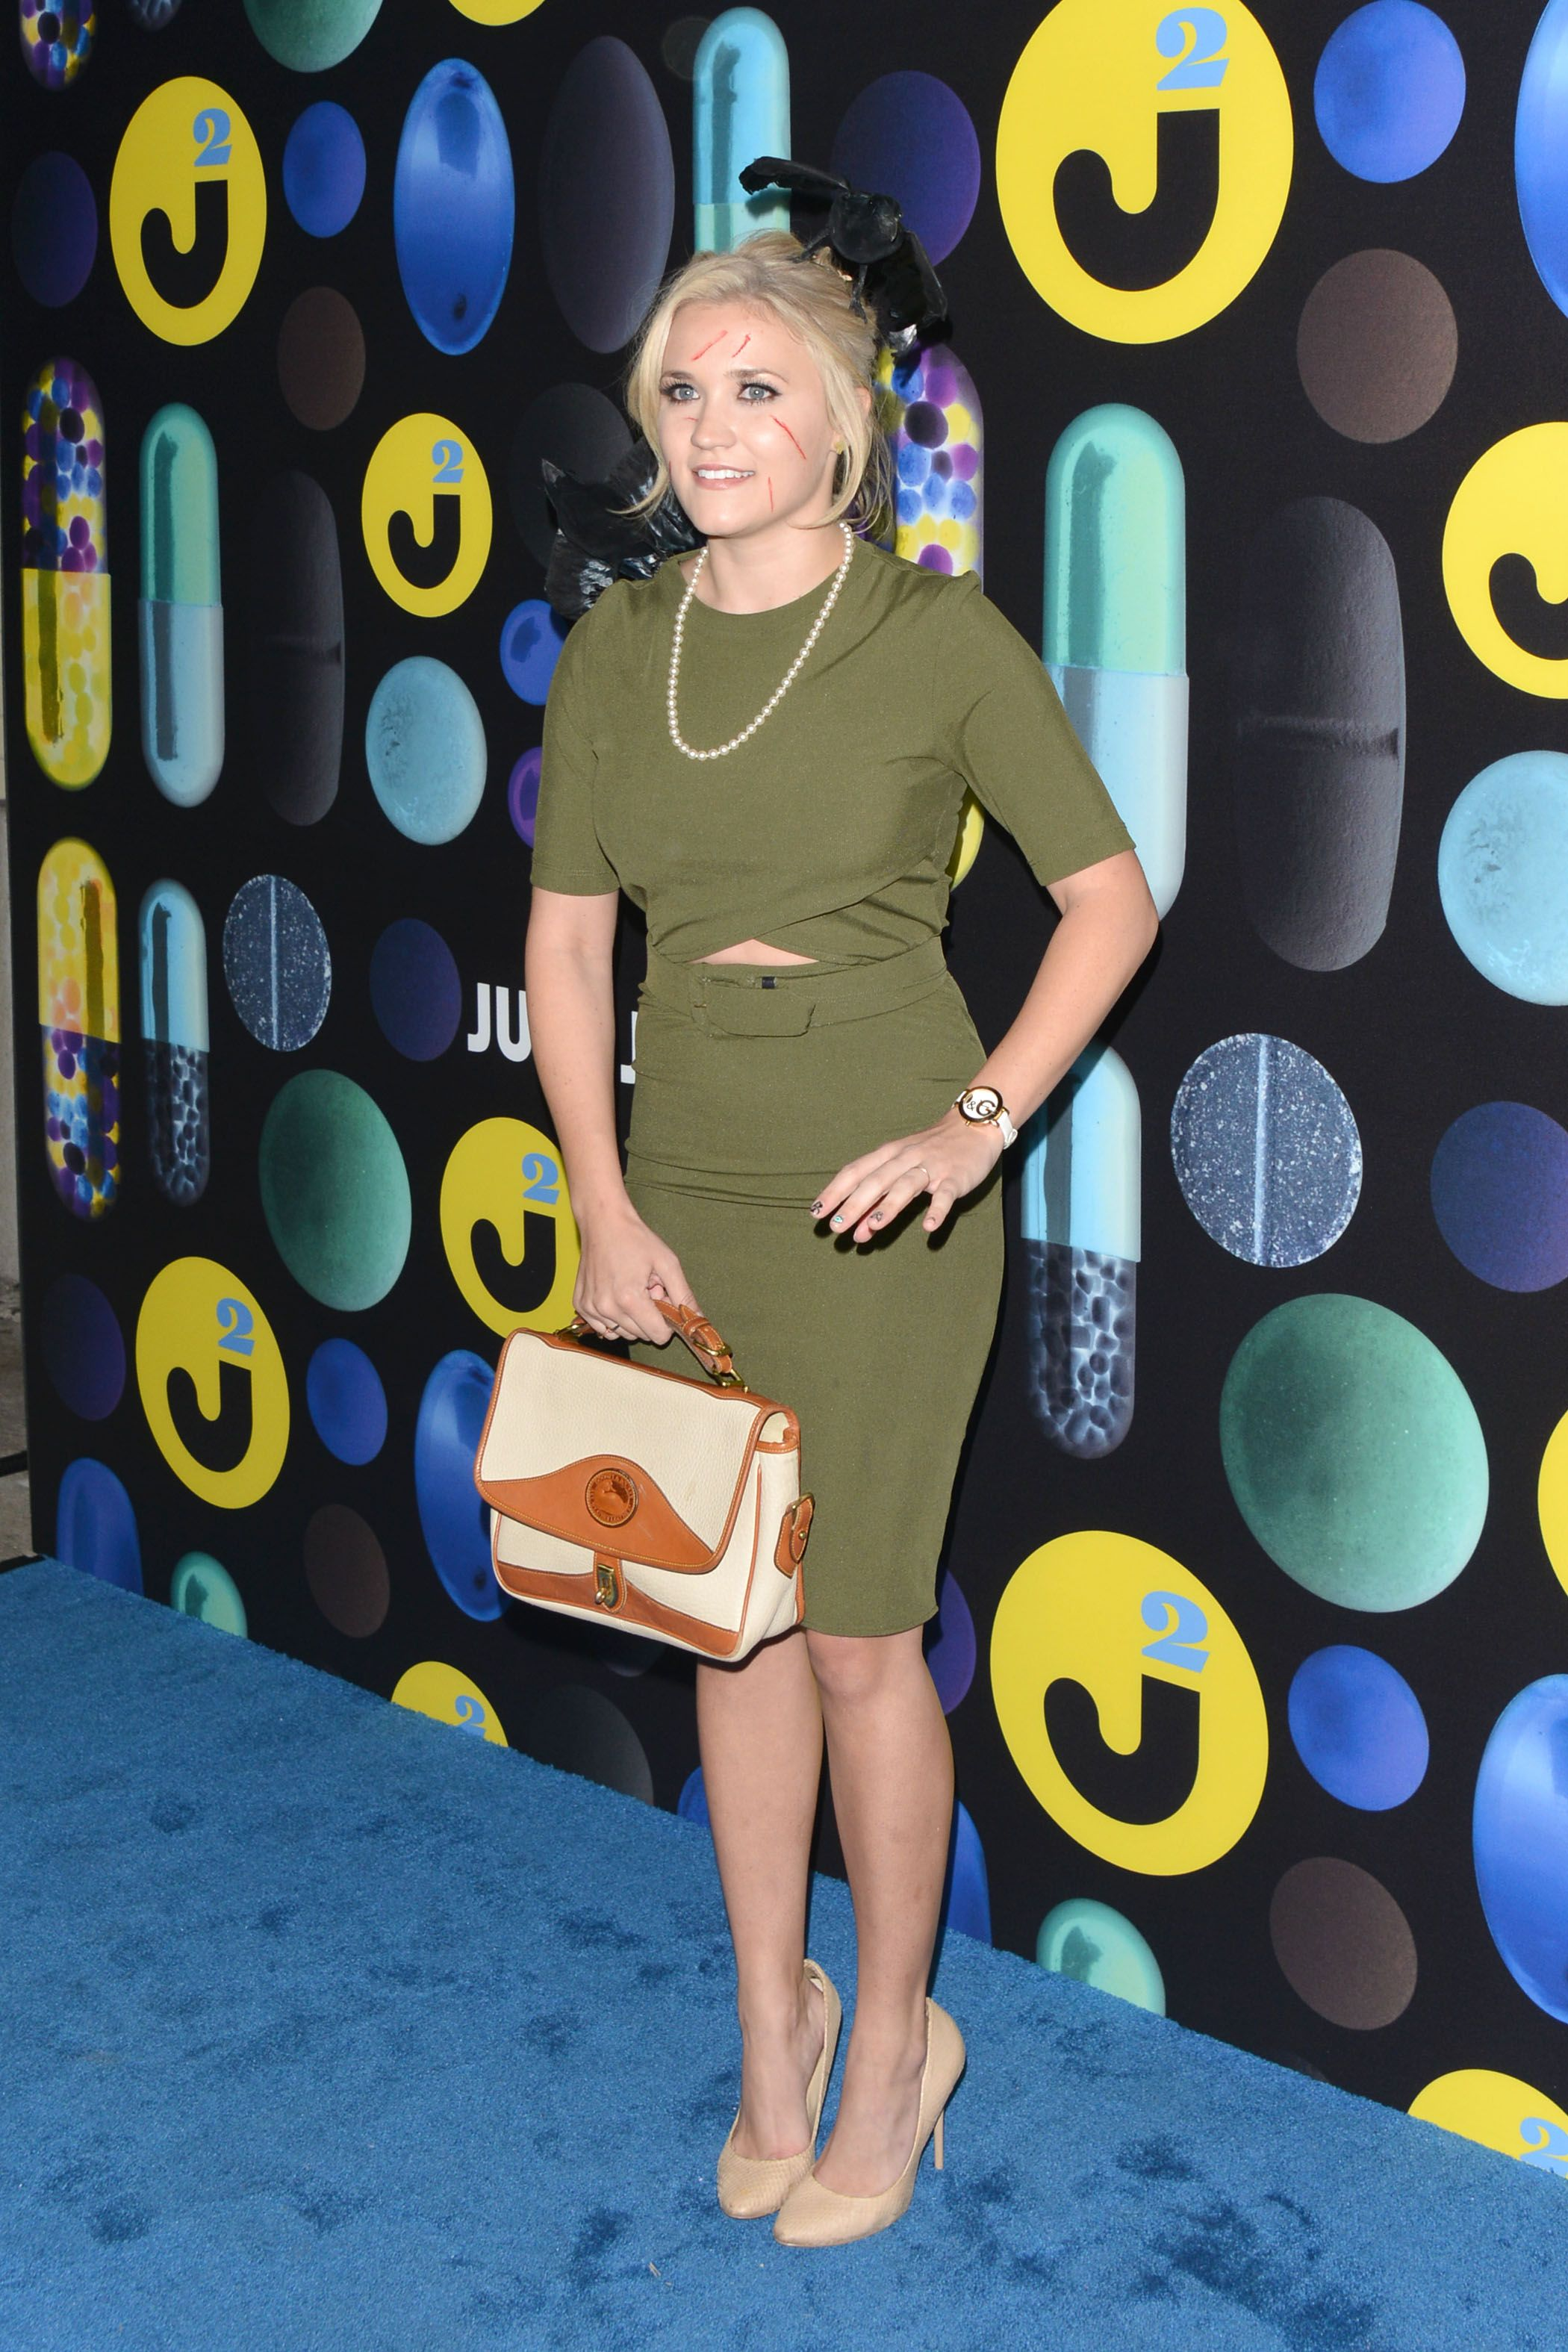 Emily Osment attends the Just Jared Halloween Party at No Vacancy ...